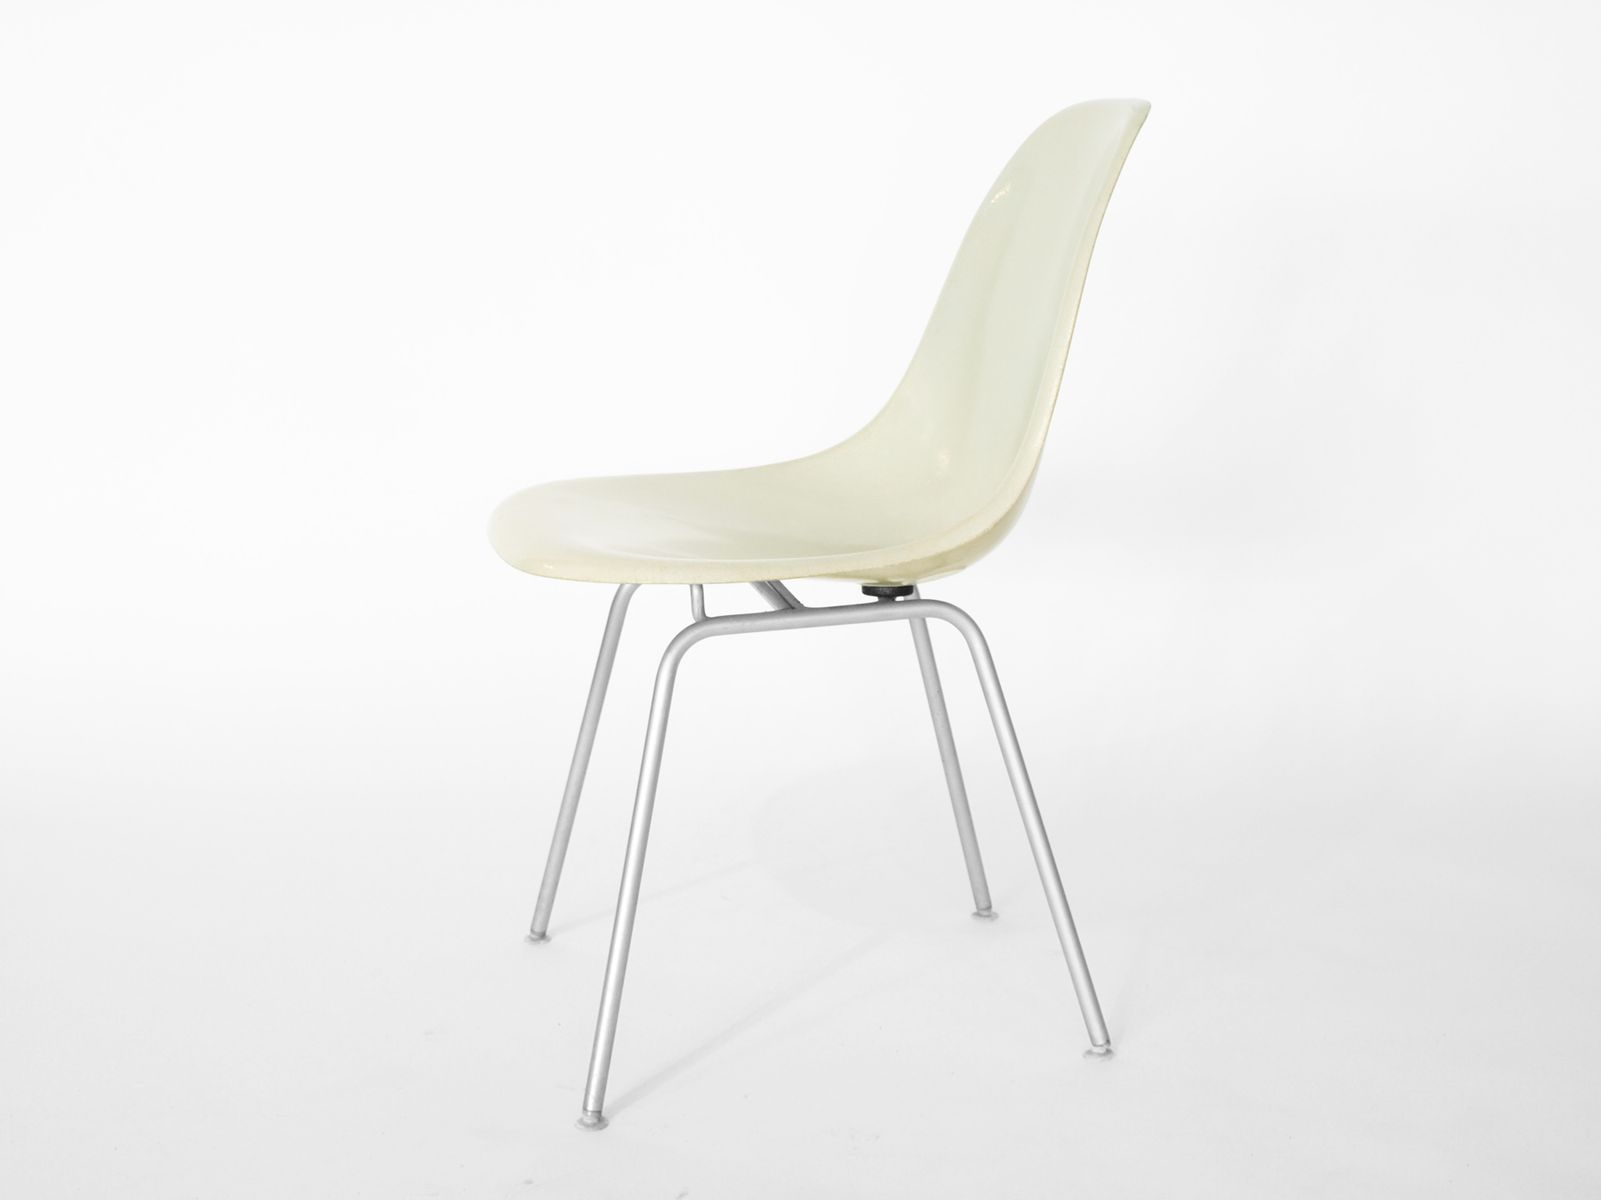 Vintage Side Chair by Charles & Ray Eames for Herman Miller for sale at Pamono